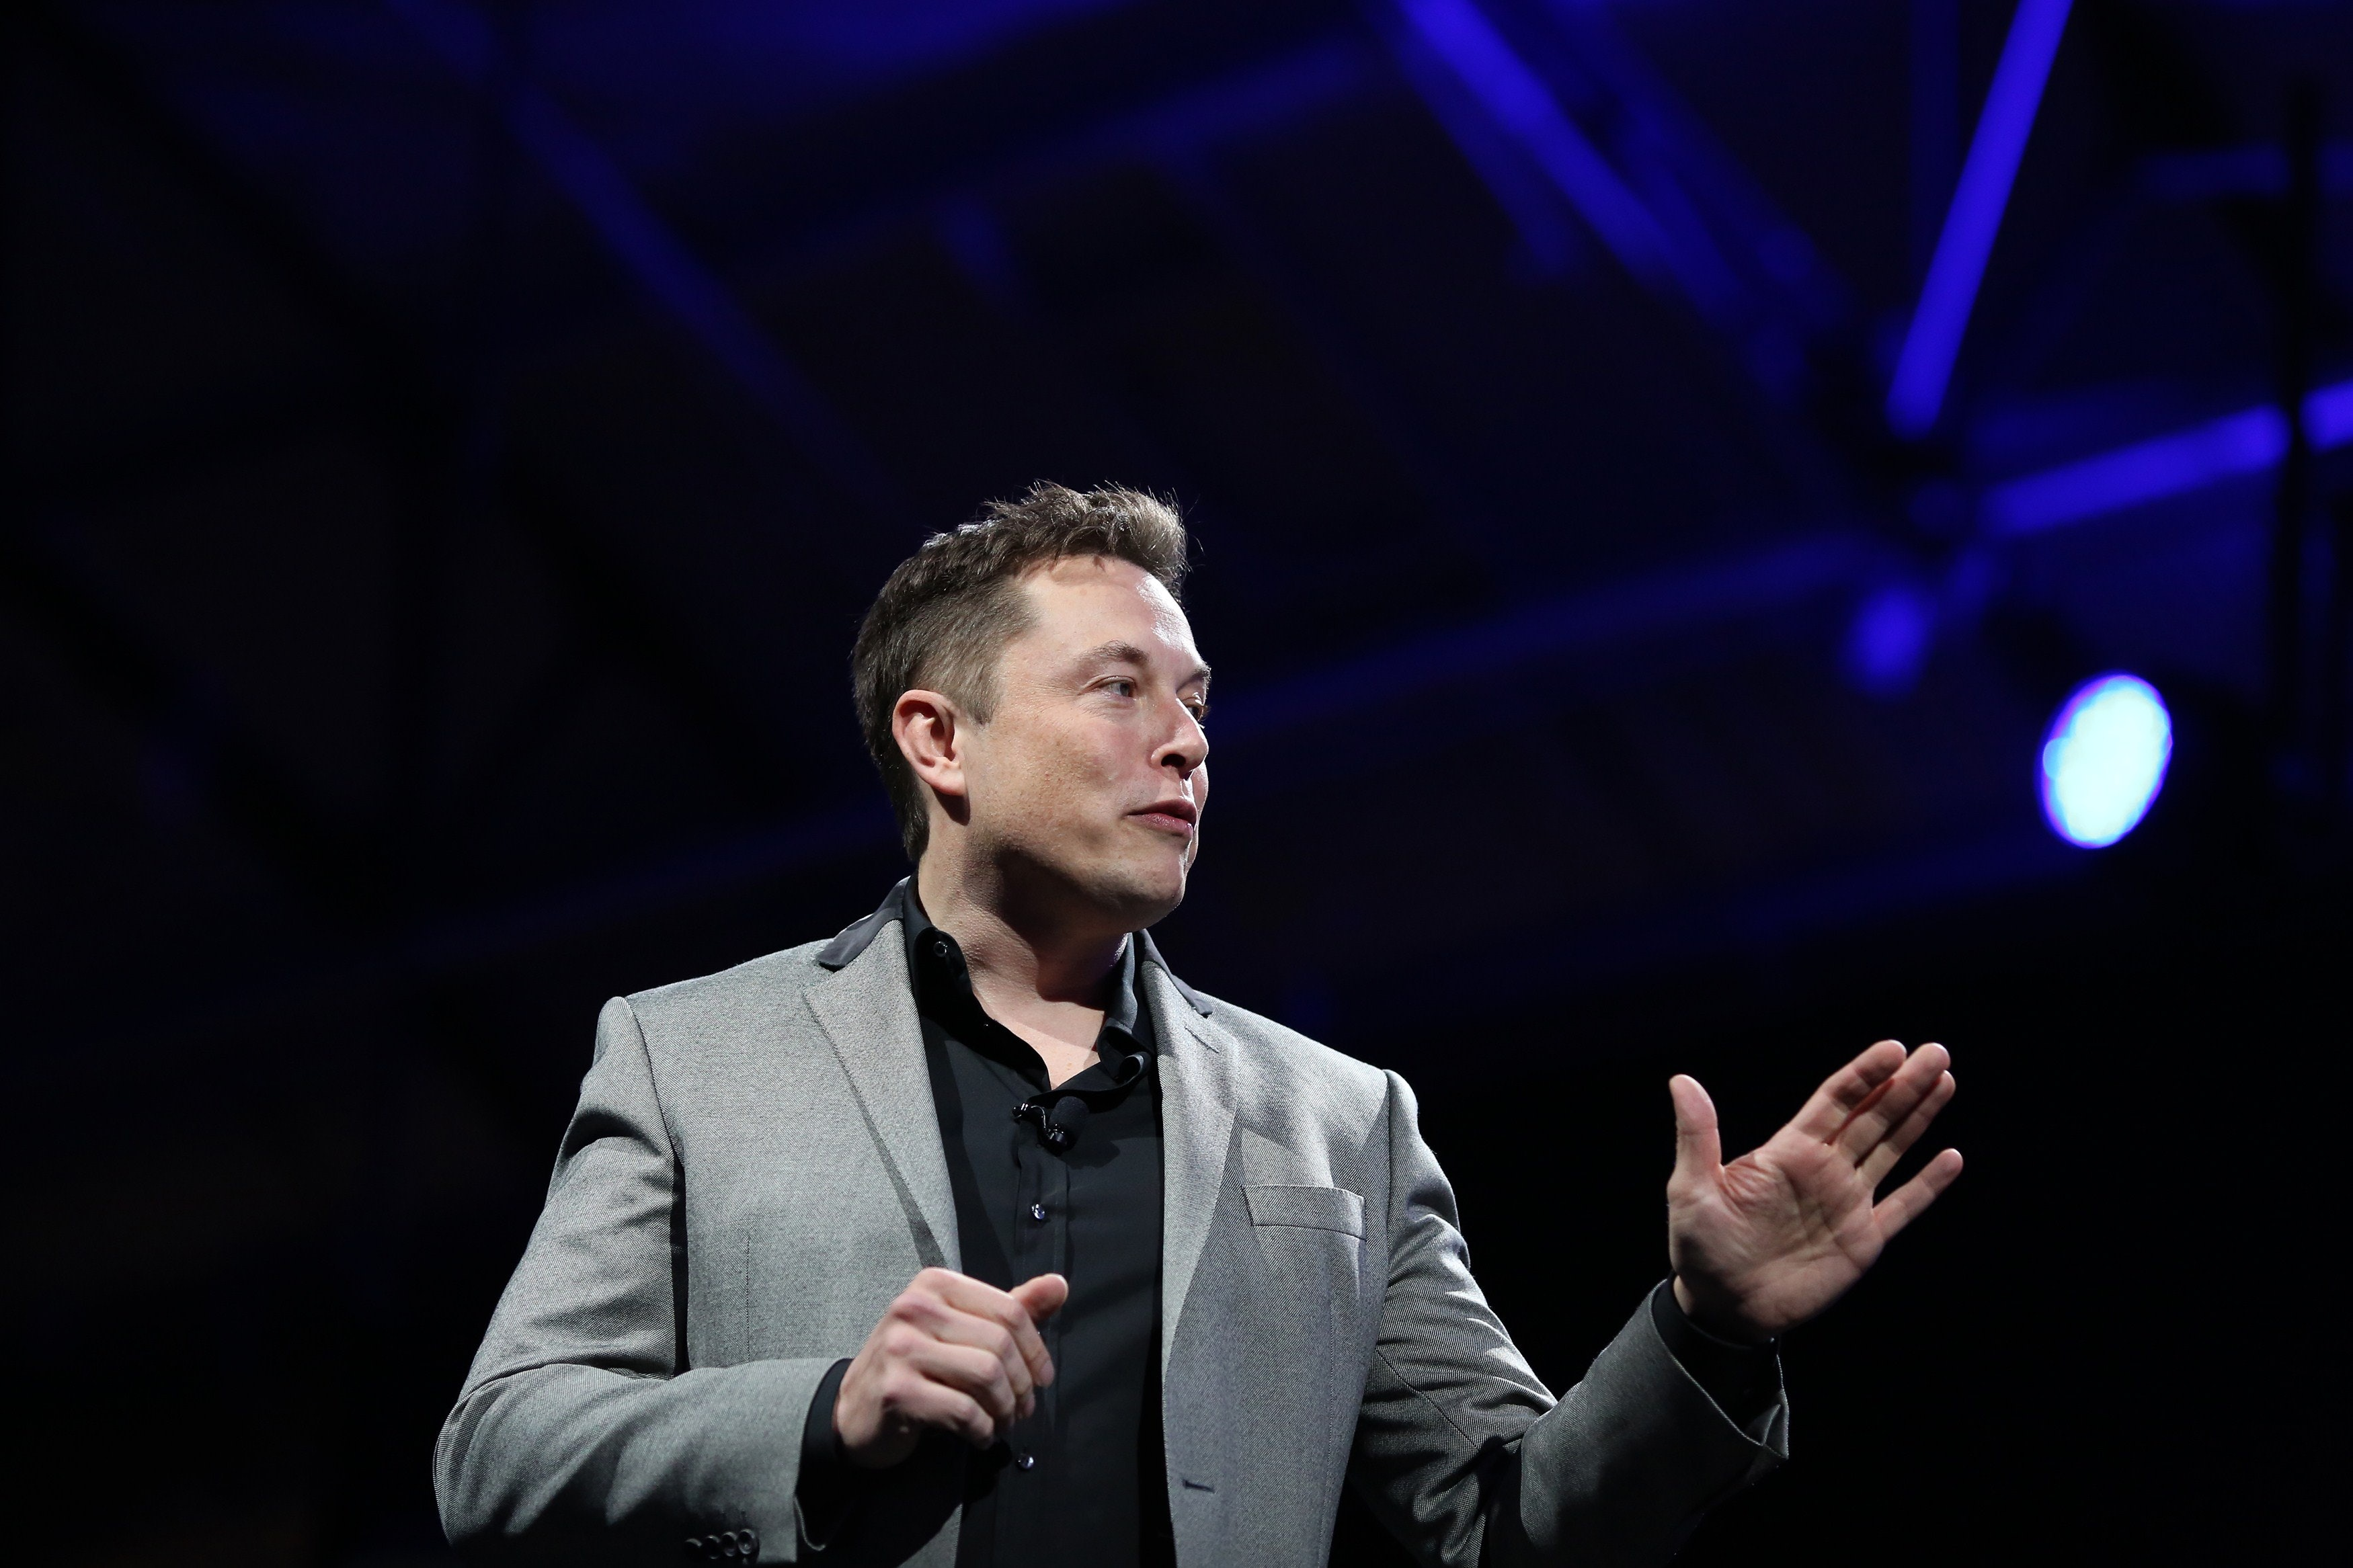 insane elon musk quotes about the futuristic world he thinks